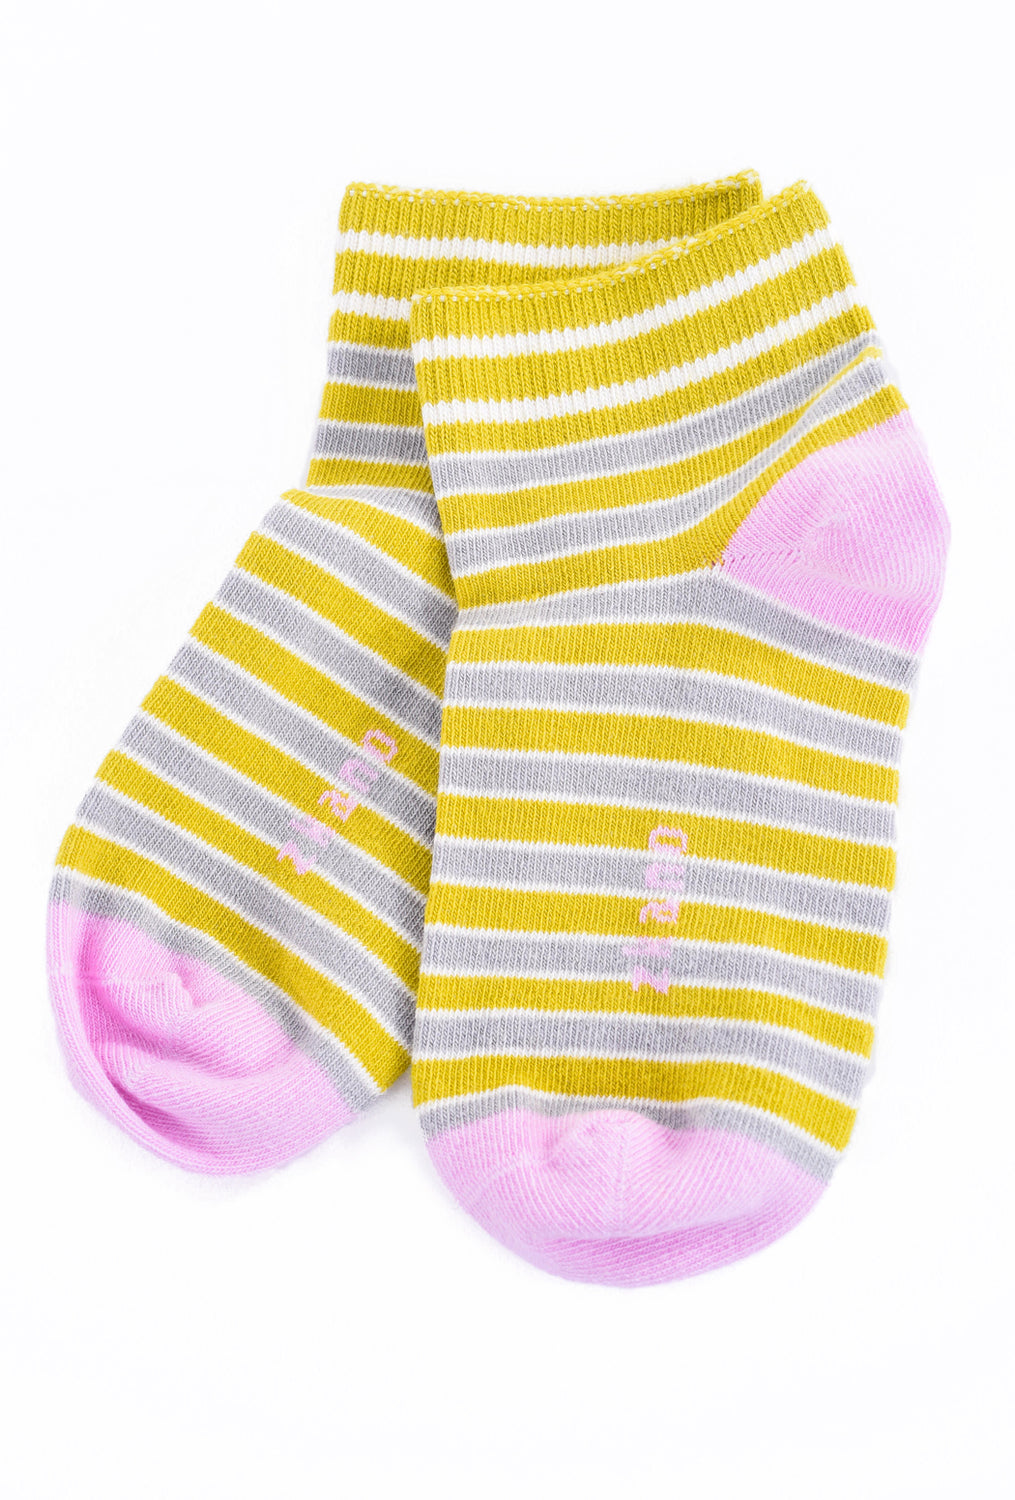 Little River Sock Mill Rosie Striped Bootie, Citron